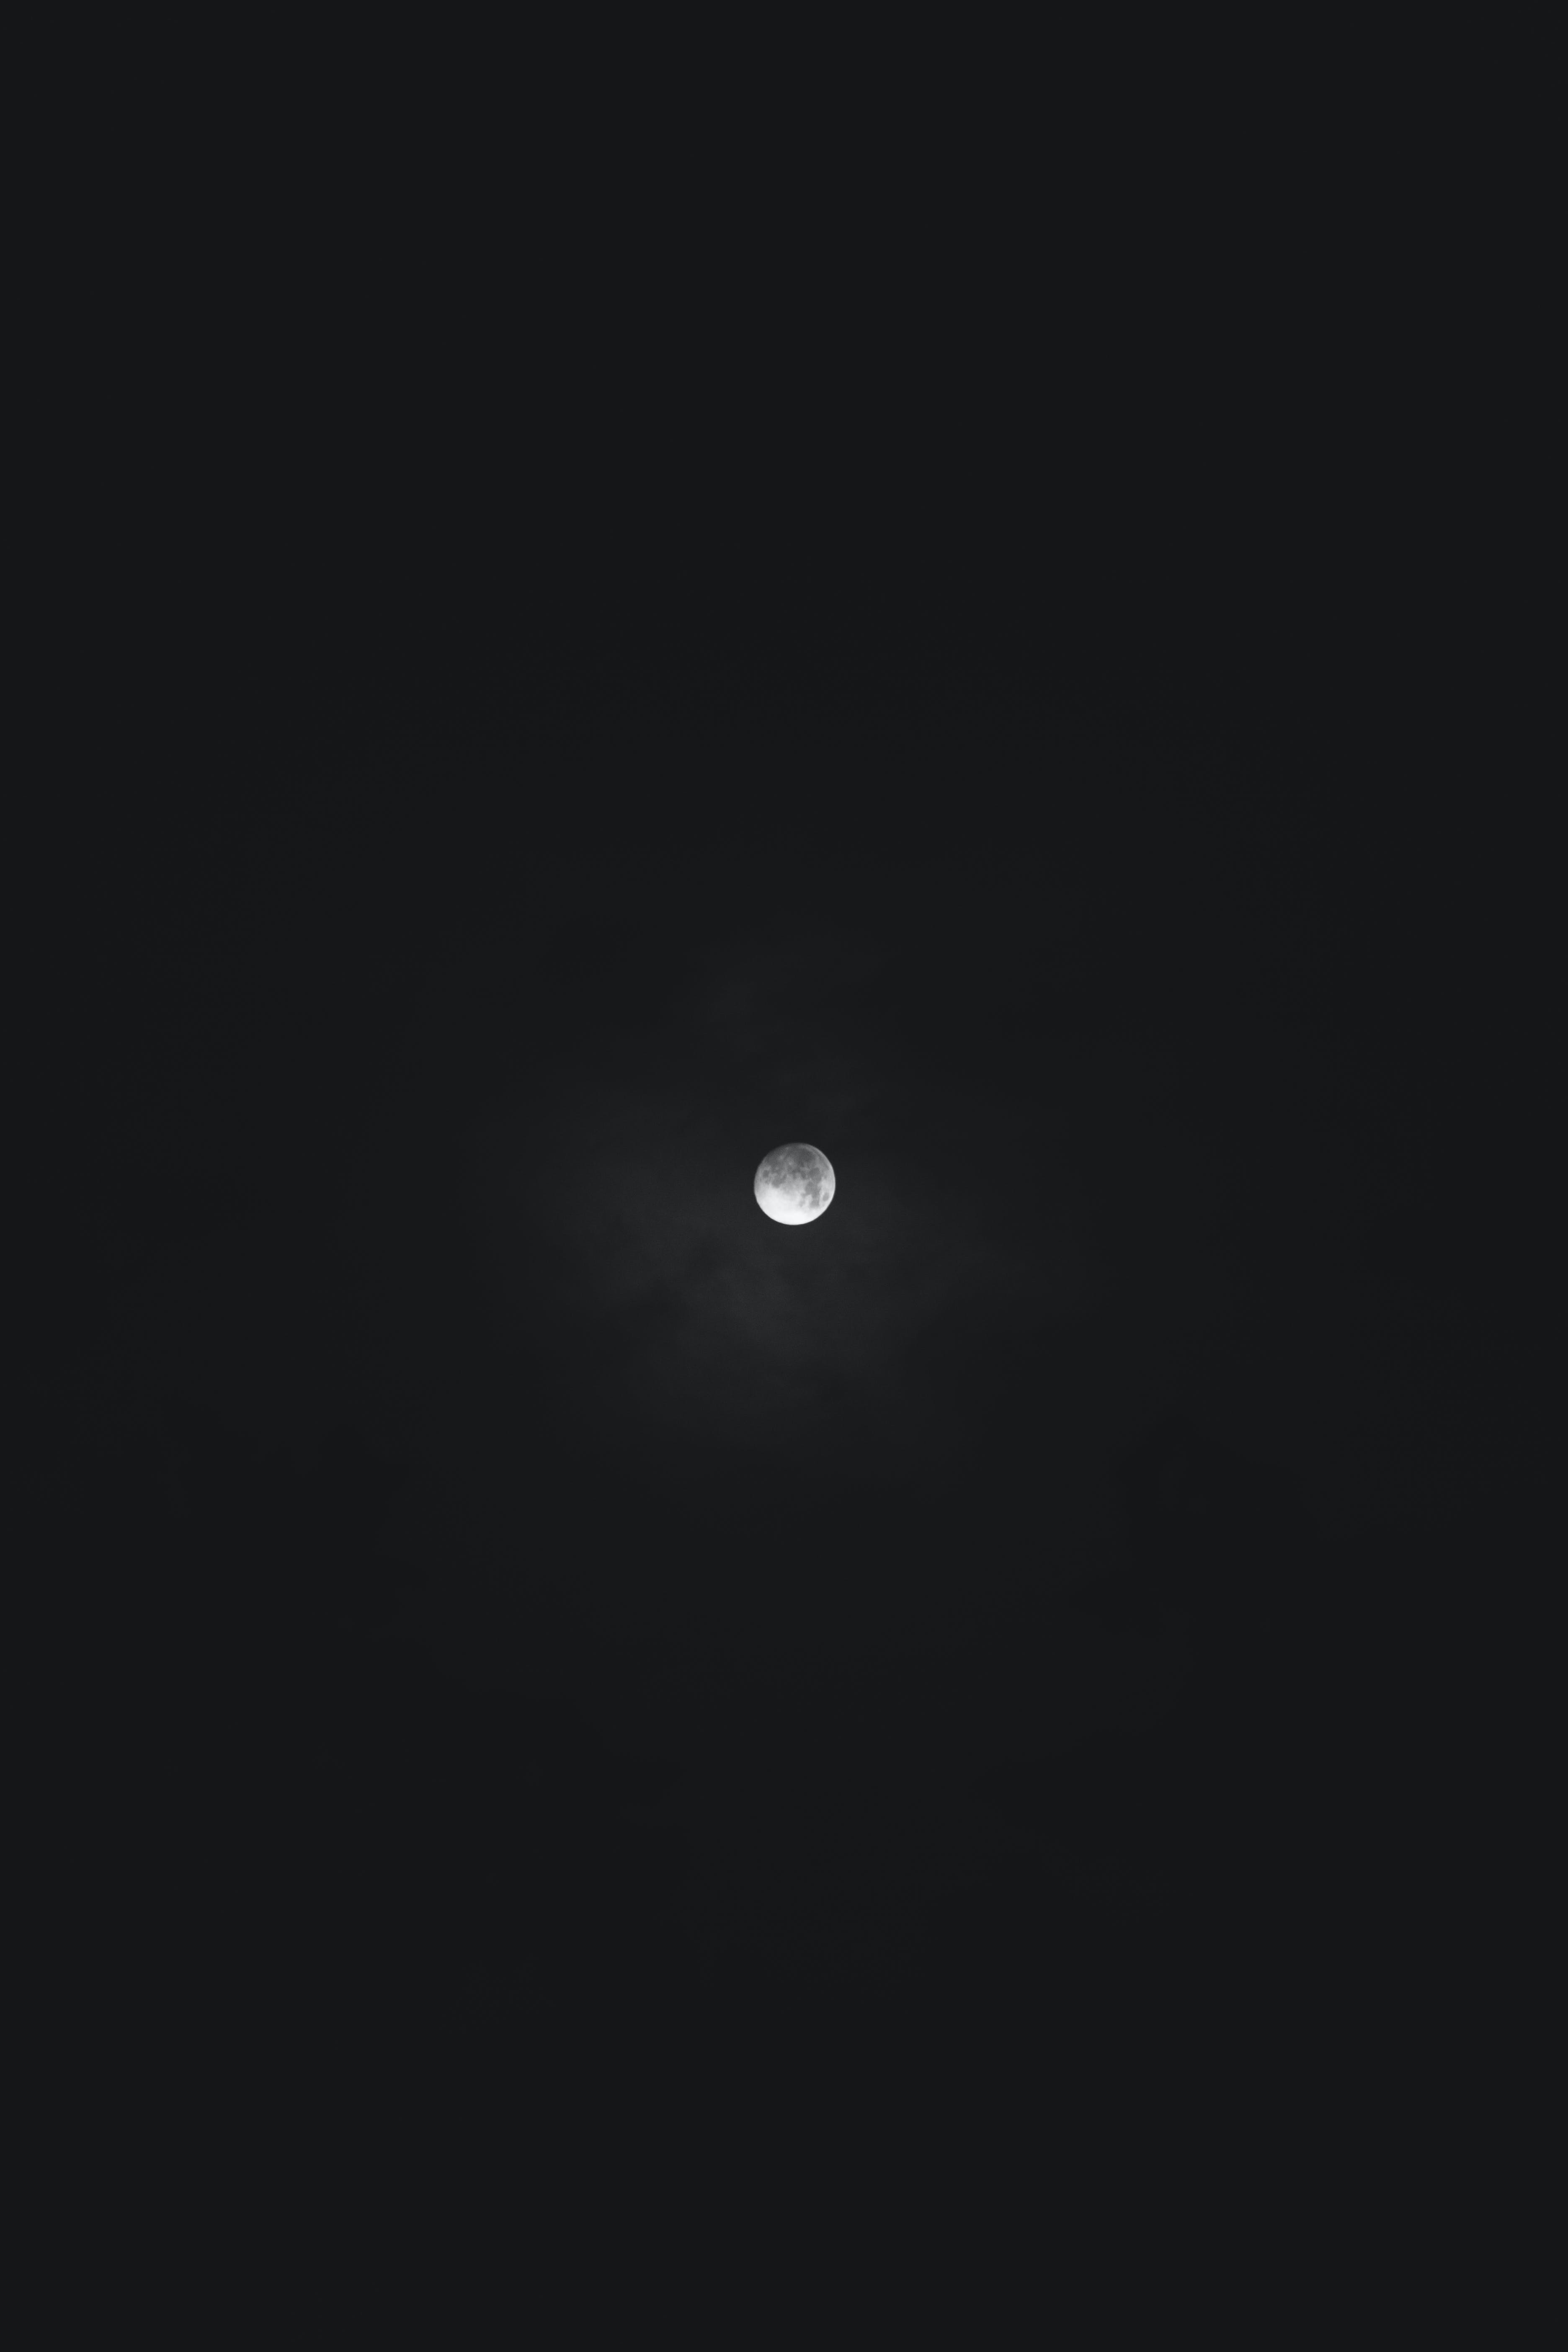 Moon Covered With Dark Clouds